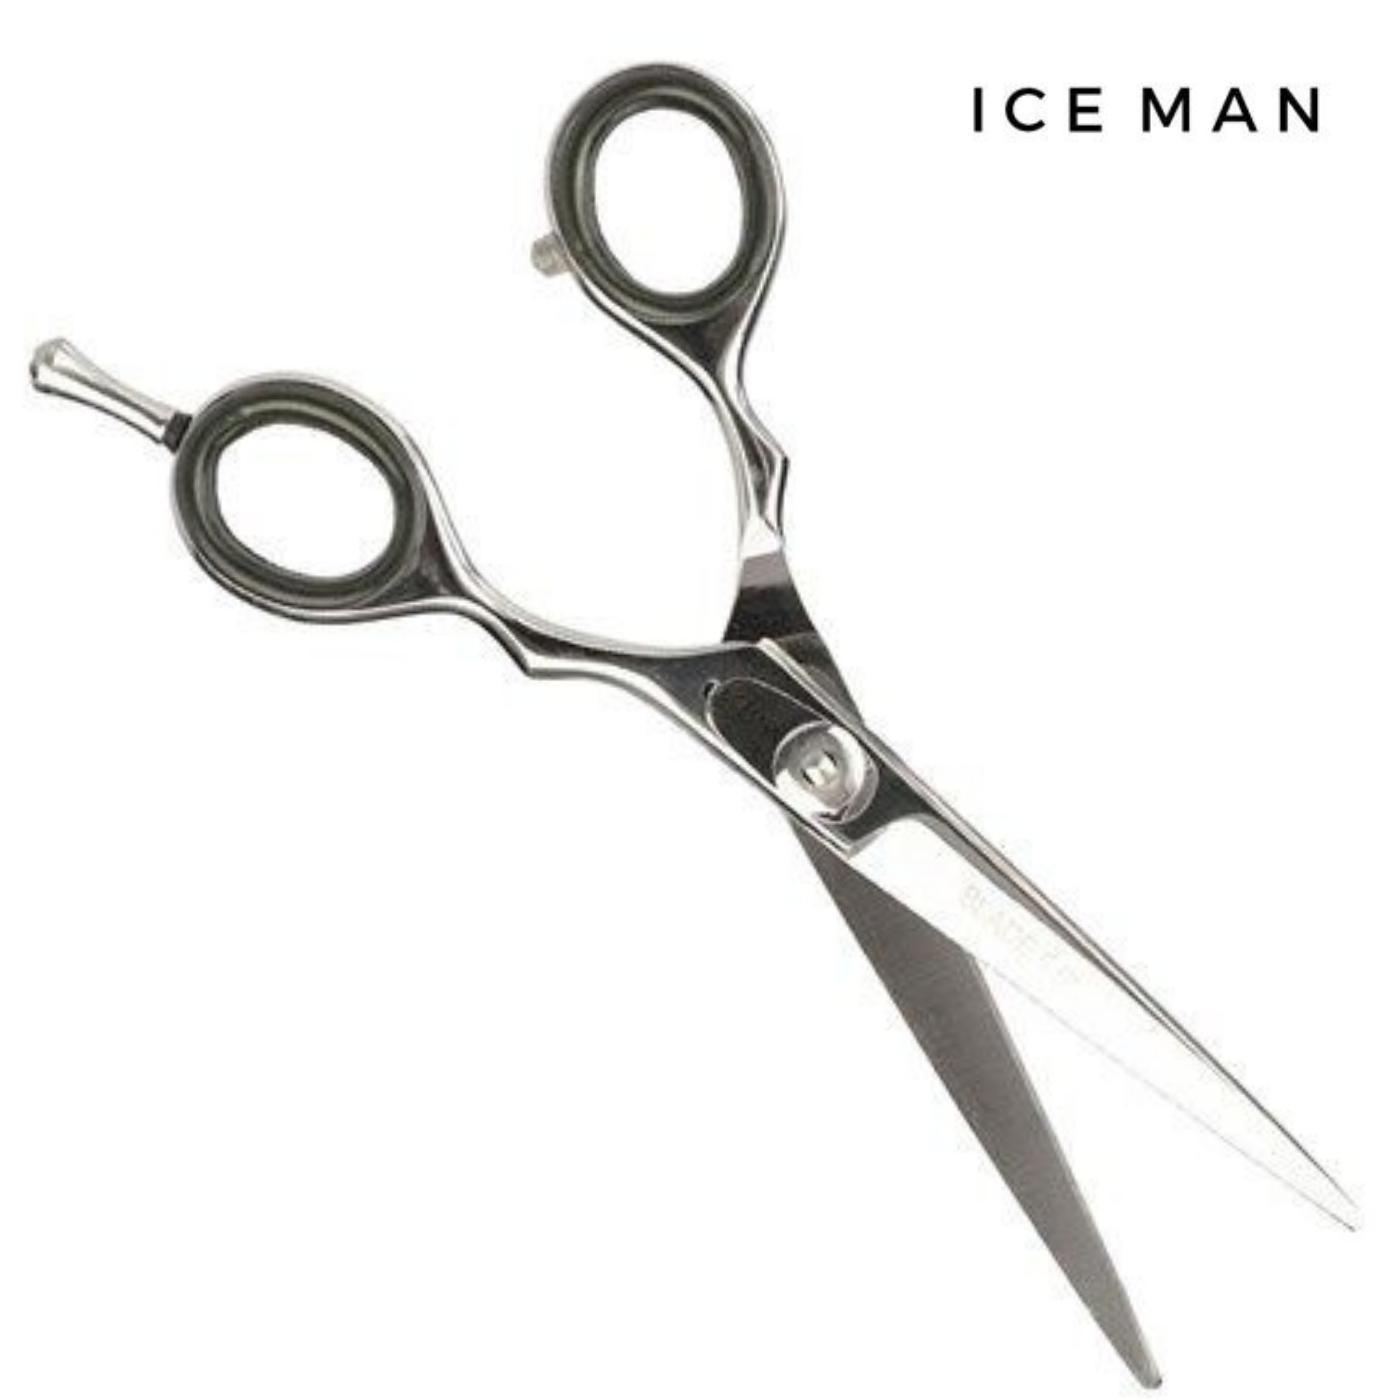 "Iceman 5.5"" Hairdressing Scissors - Japan Scissors"